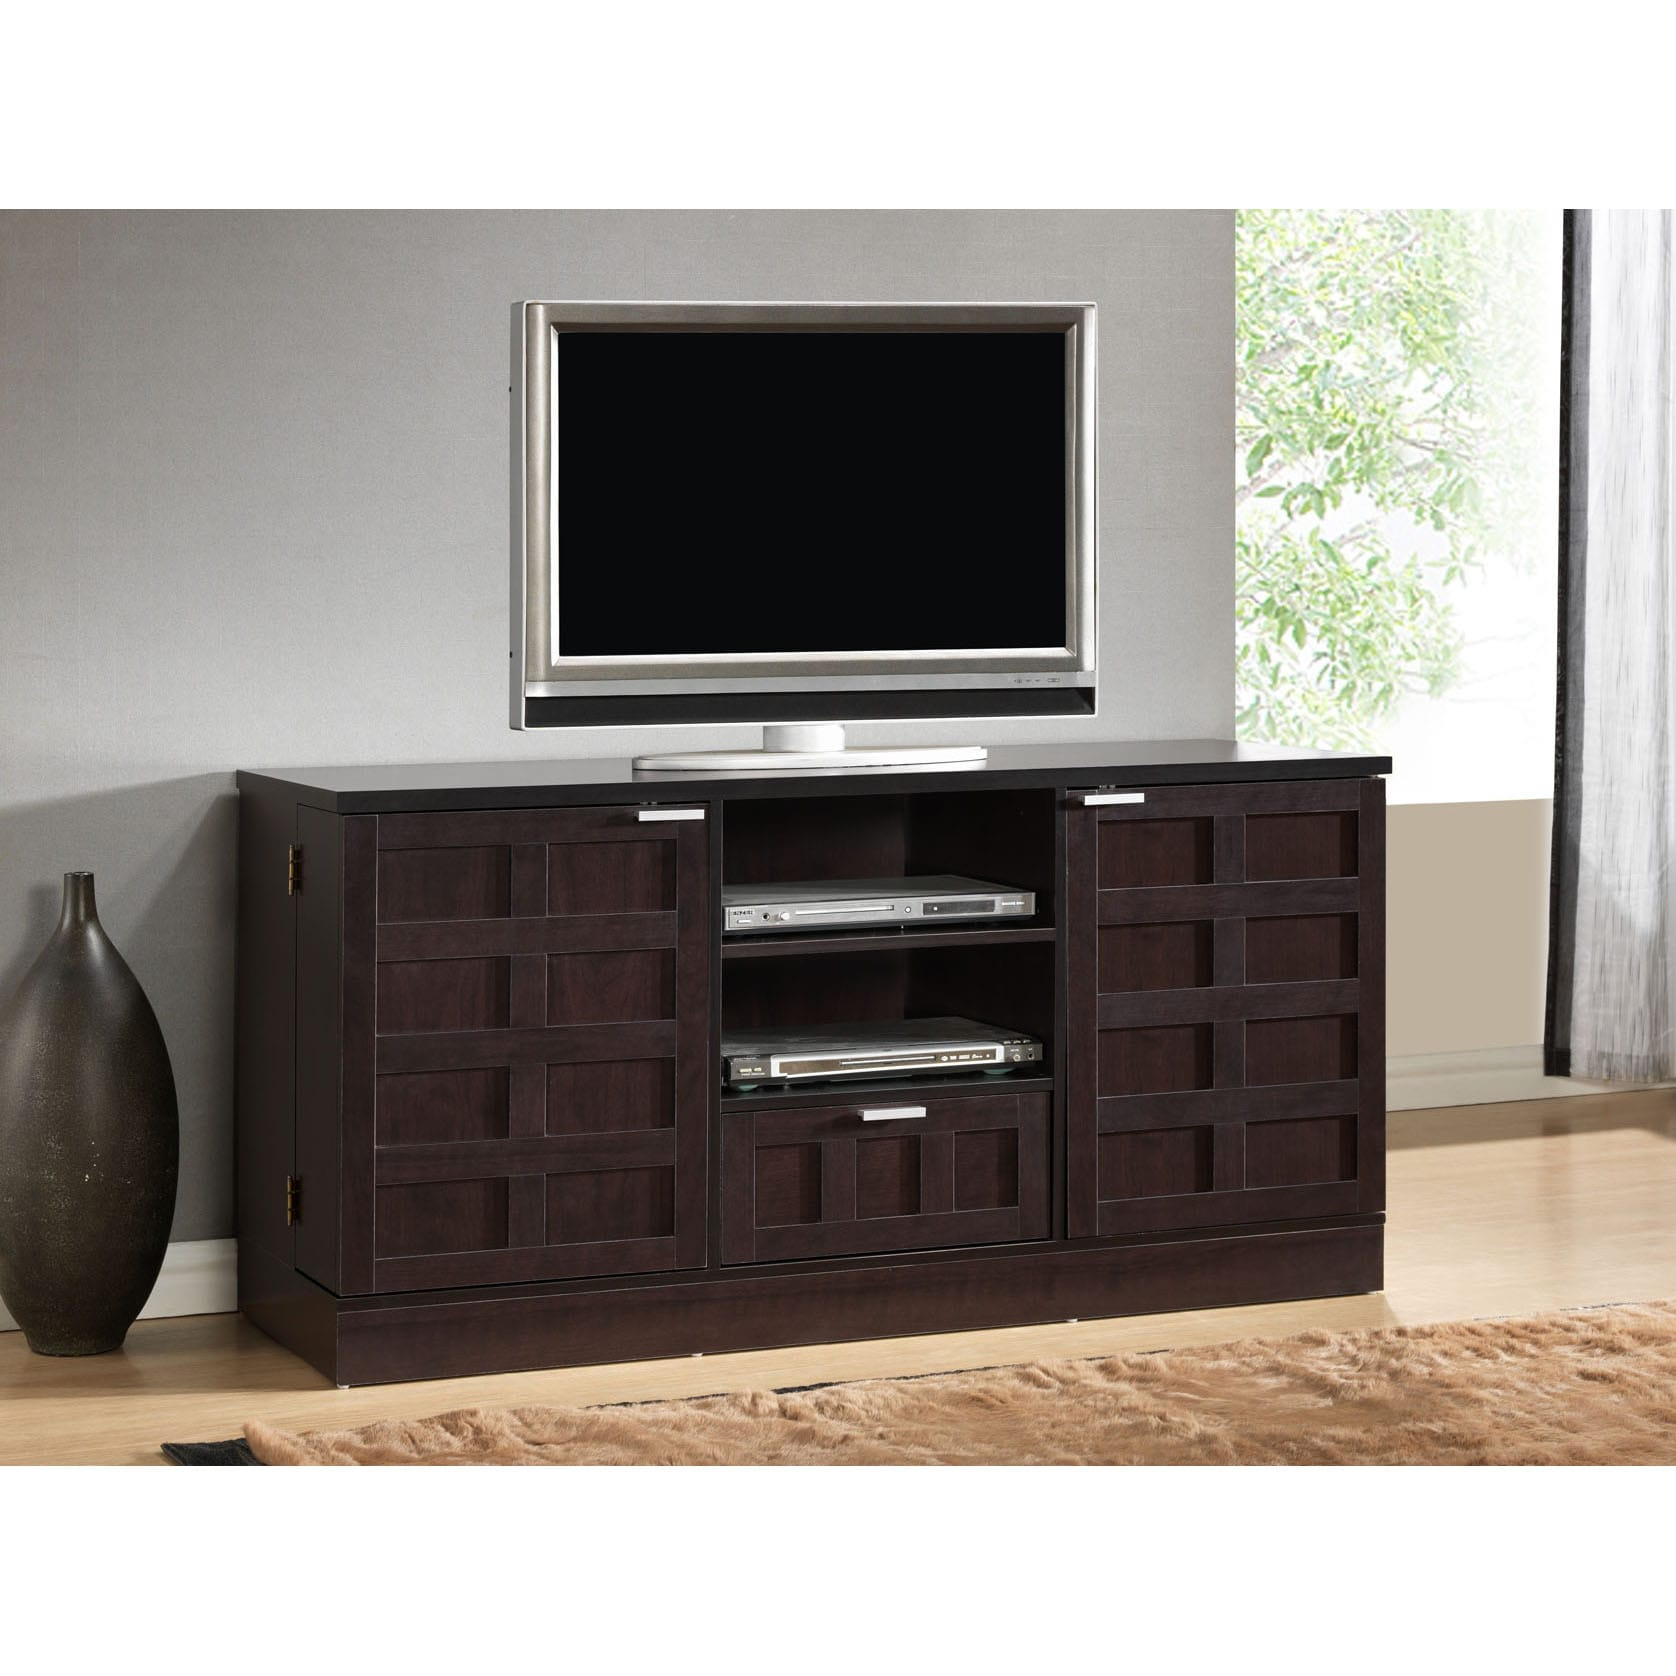 Baxton Tosato Brown Modern TV Stand and Media Cabinet at Sears.com